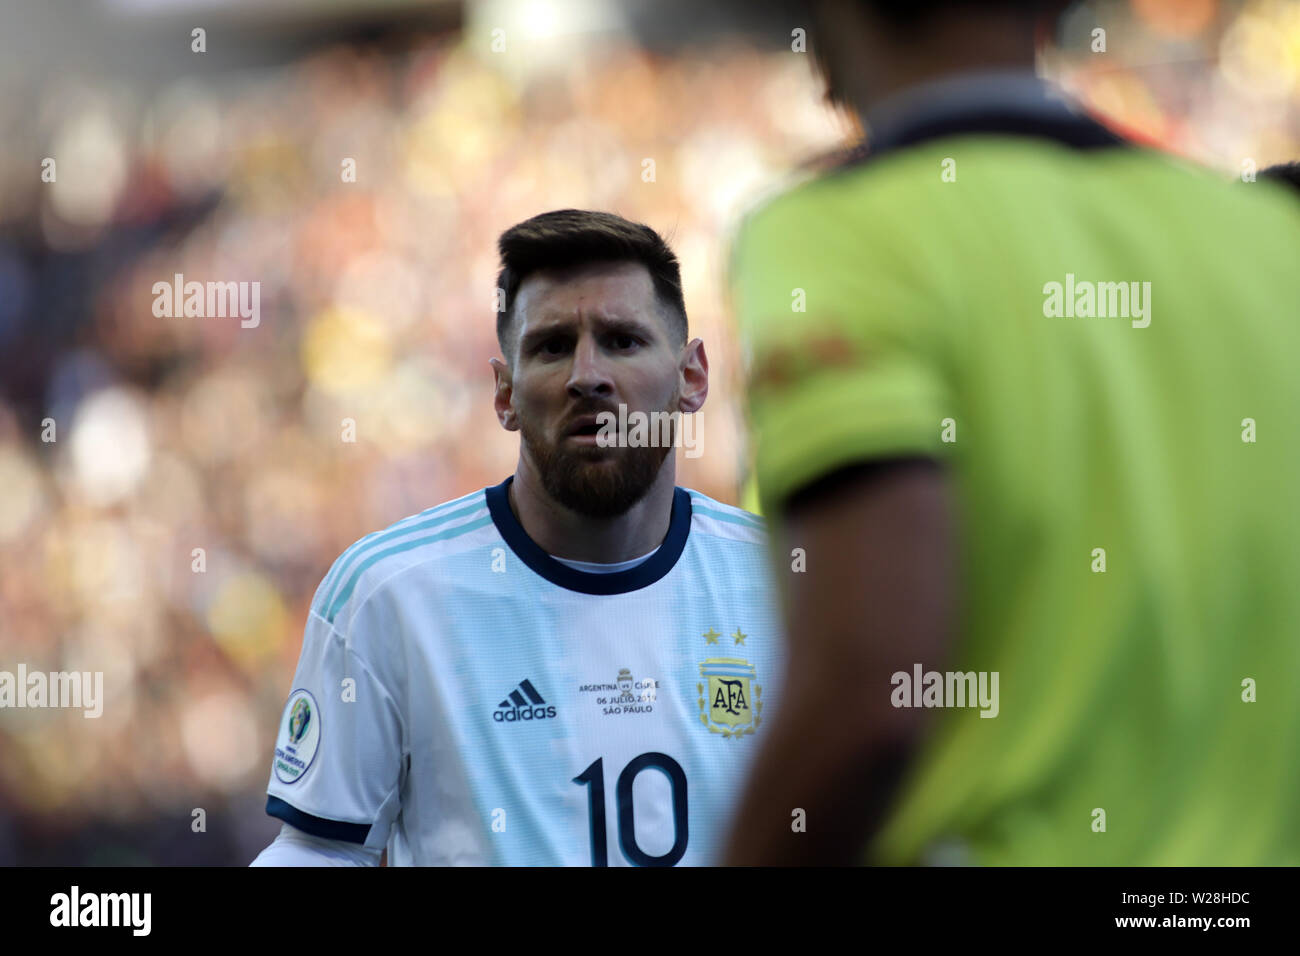 Sao Paulo, Brazil. 6th July, 2019. Argentina's Lionel Messi reacts after he recieved a red card during the 3rd place match of Copa America 2019 between Argentina and Chile in Sao Paulo, Brazil, July 6, 2019. Credit: Rahel Patrasso/Xinhua/Alamy Live News - Stock Image